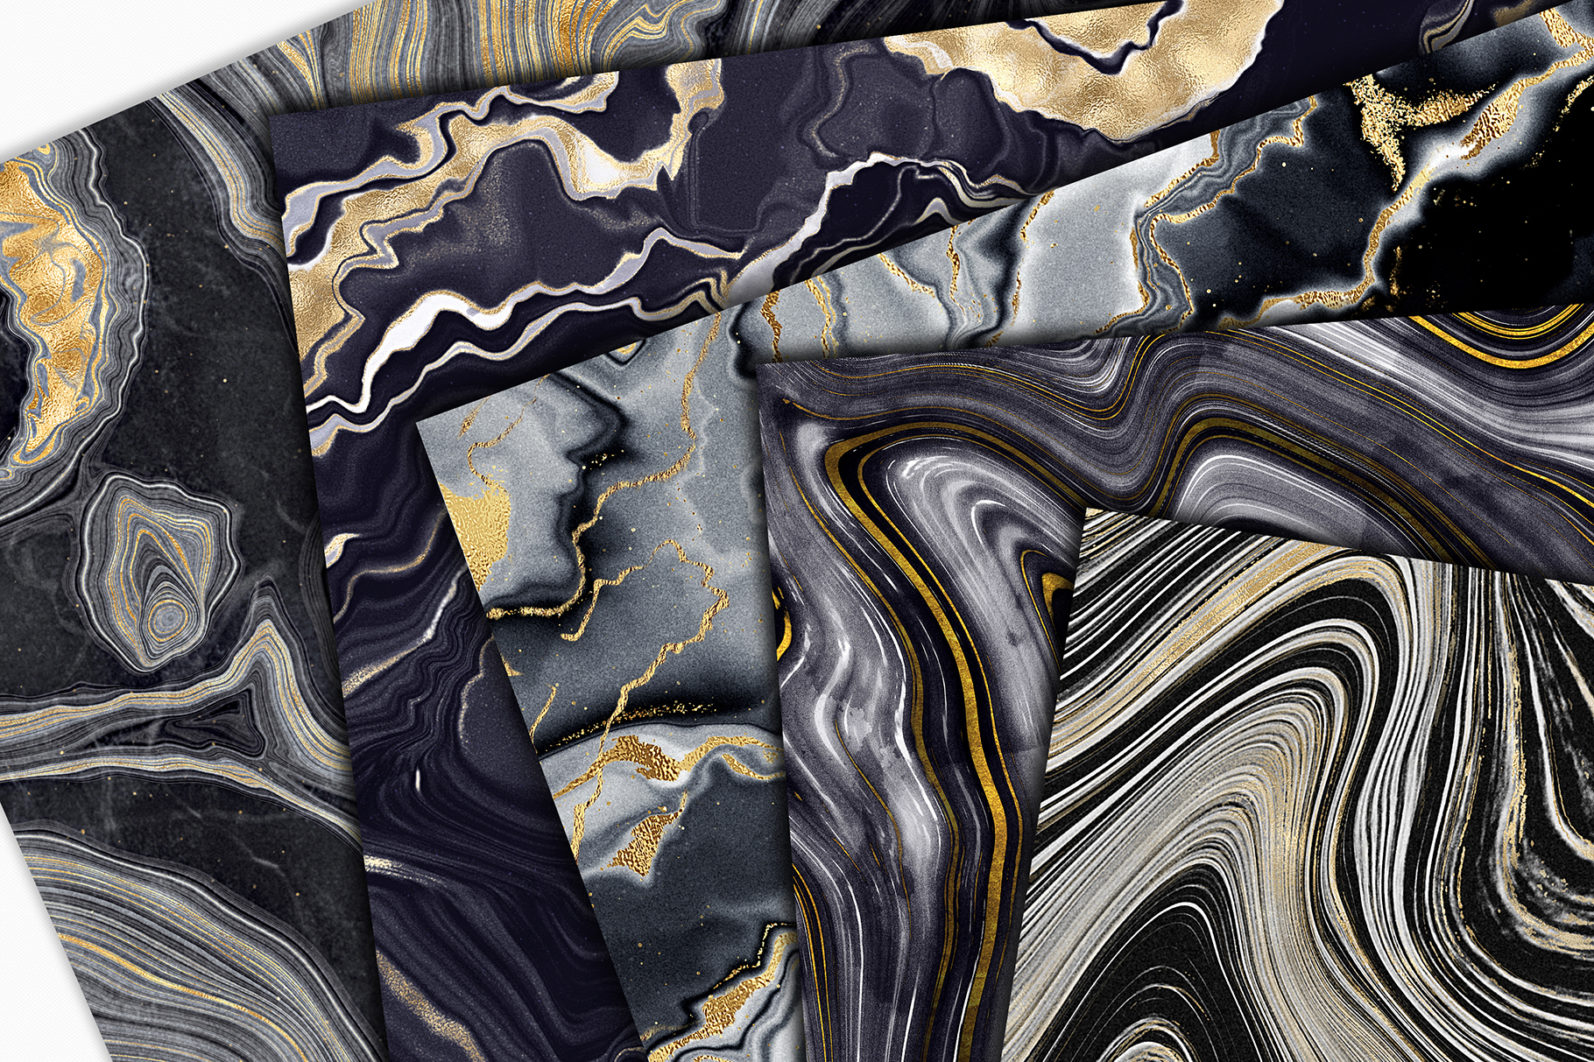 10 Agate Stone Digital Papers - Gold Veined Geode Textures - 03 agate backgrounds -